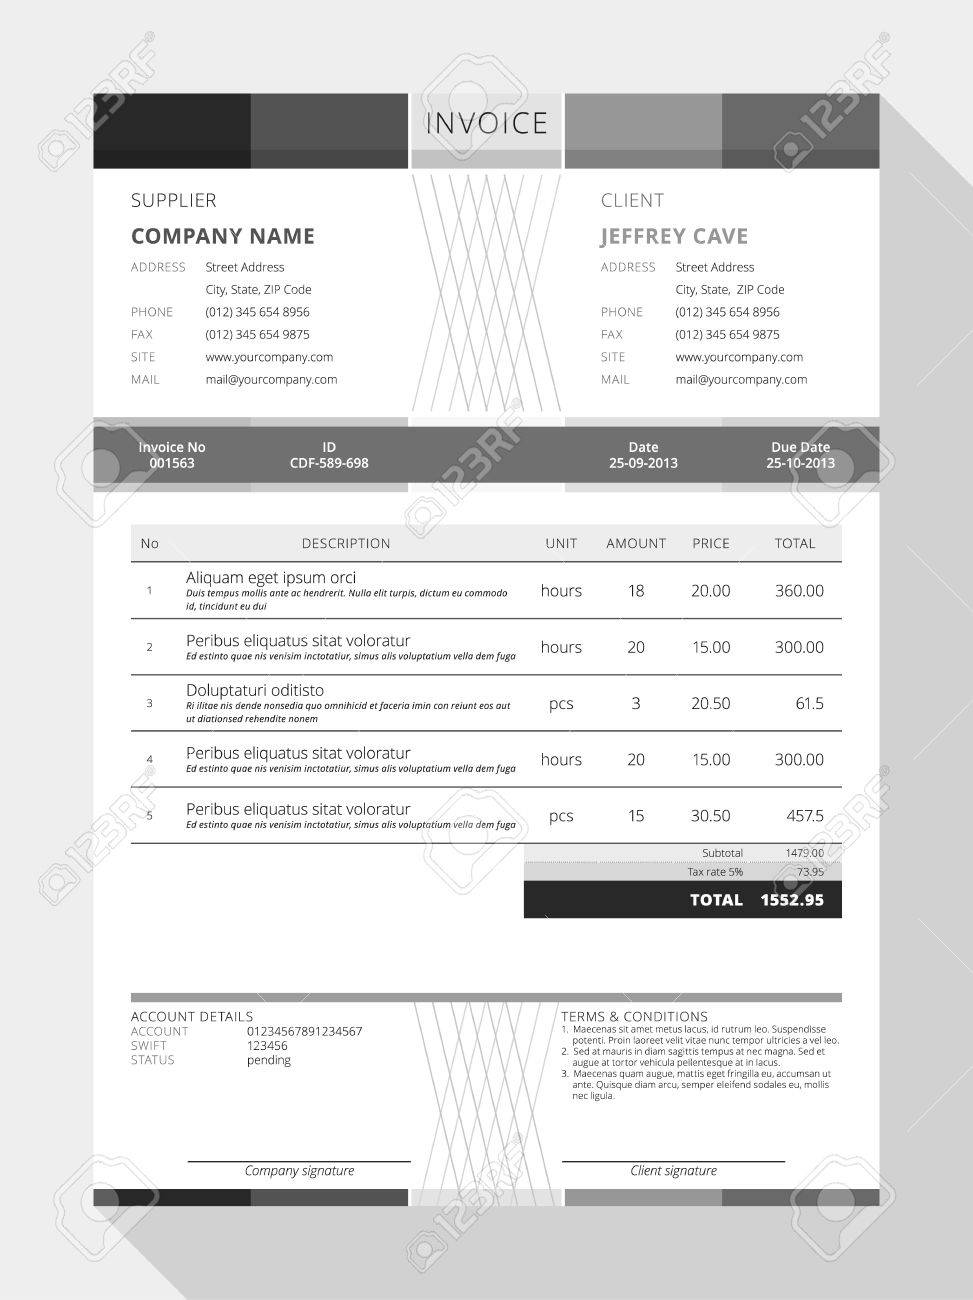 Usdgus  Prepossessing Design An Invoice  Professional Graphic Design Invoice  With Exciting Vector Customizable Invoice Form Template Design Vector   Design An Invoice With Nice Bill Software Invoicing Free Also Honda Accord Invoice Price  In Addition Download Invoices And Disbursement Invoice As Well As Net Invoice Price Additionally Tandem Invoice Finance From Happytomco With Usdgus  Exciting Design An Invoice  Professional Graphic Design Invoice  With Nice Vector Customizable Invoice Form Template Design Vector   Design An Invoice And Prepossessing Bill Software Invoicing Free Also Honda Accord Invoice Price  In Addition Download Invoices From Happytomco